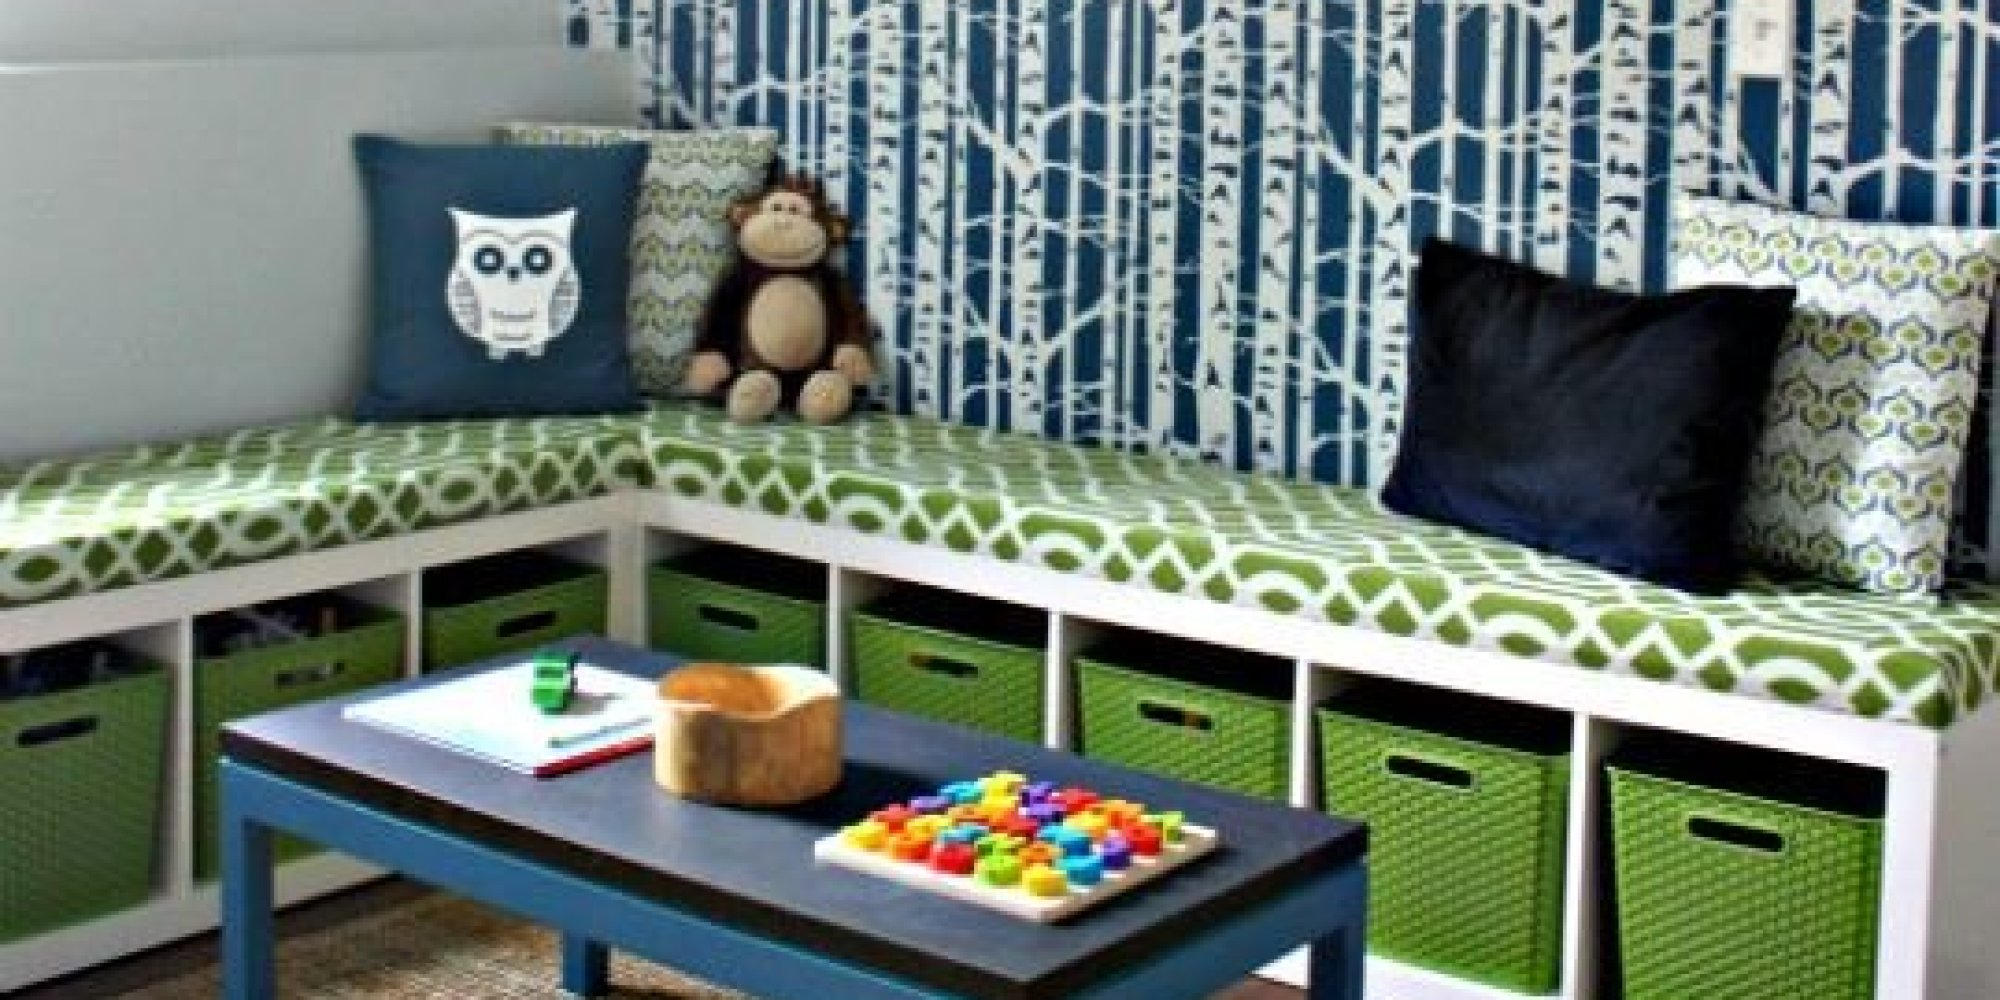 11 ways to dress up ikea 39 s iconic bookcase before it 39 s gone forever photos huffpost. Black Bedroom Furniture Sets. Home Design Ideas